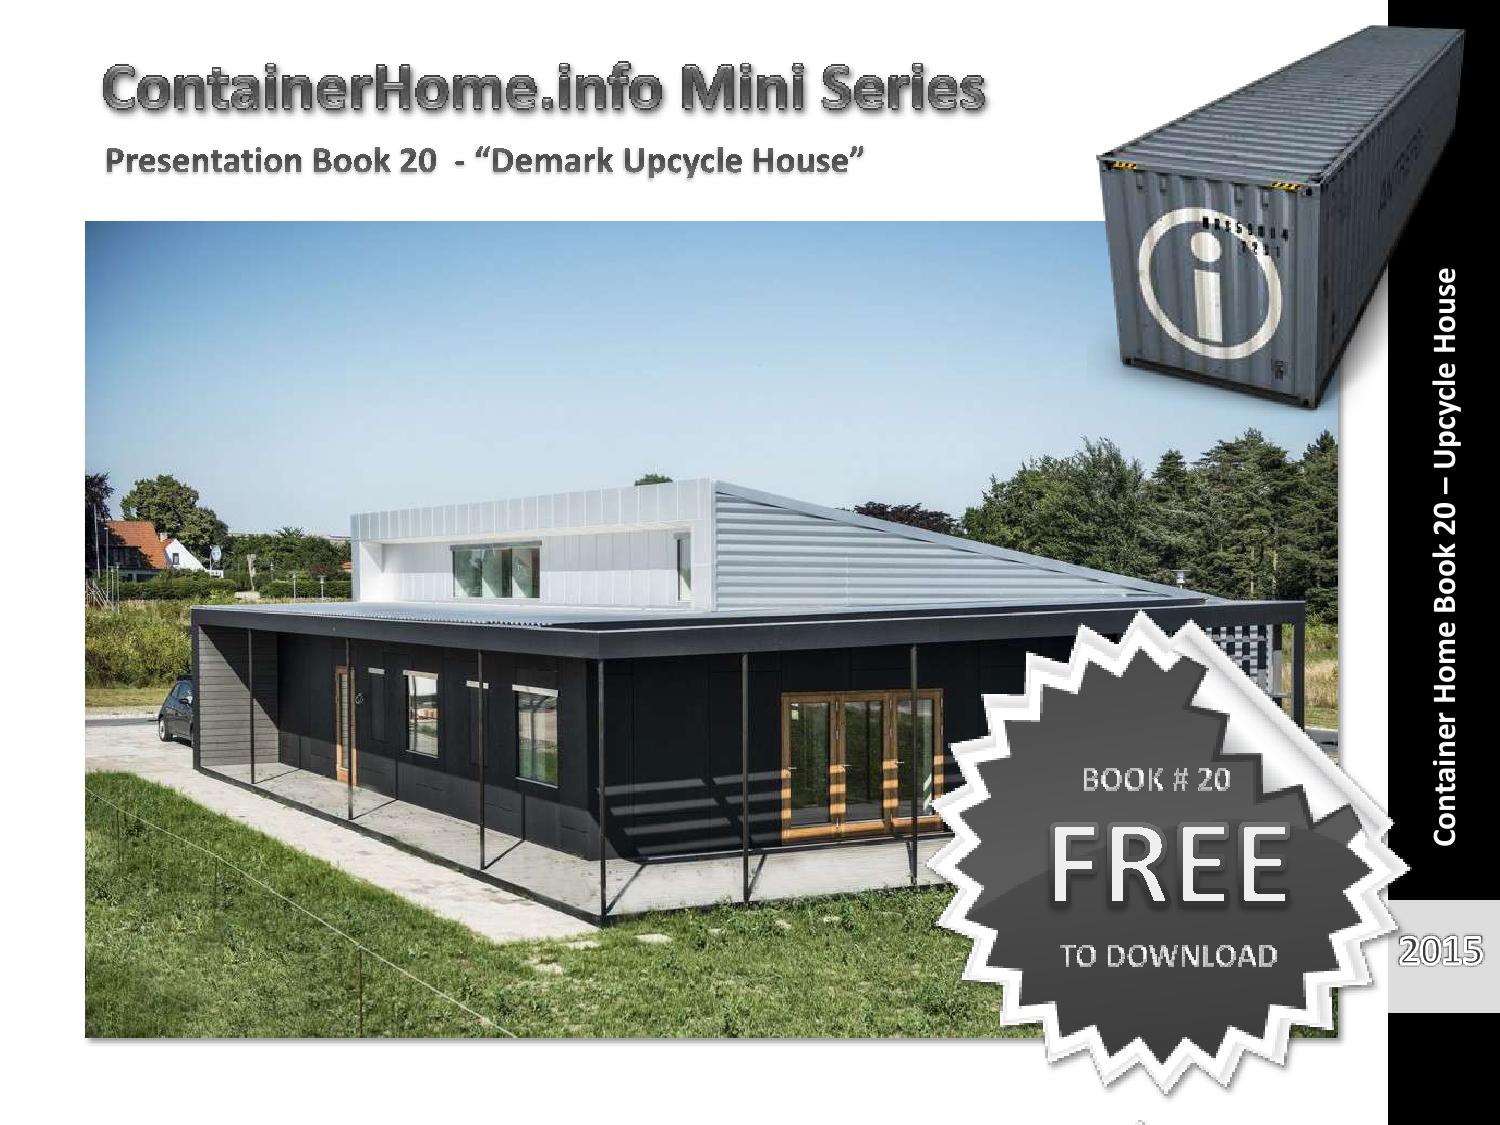 Shipping container homes book 20 by shippingcontainerhomes - Shipping container home design kit download ...